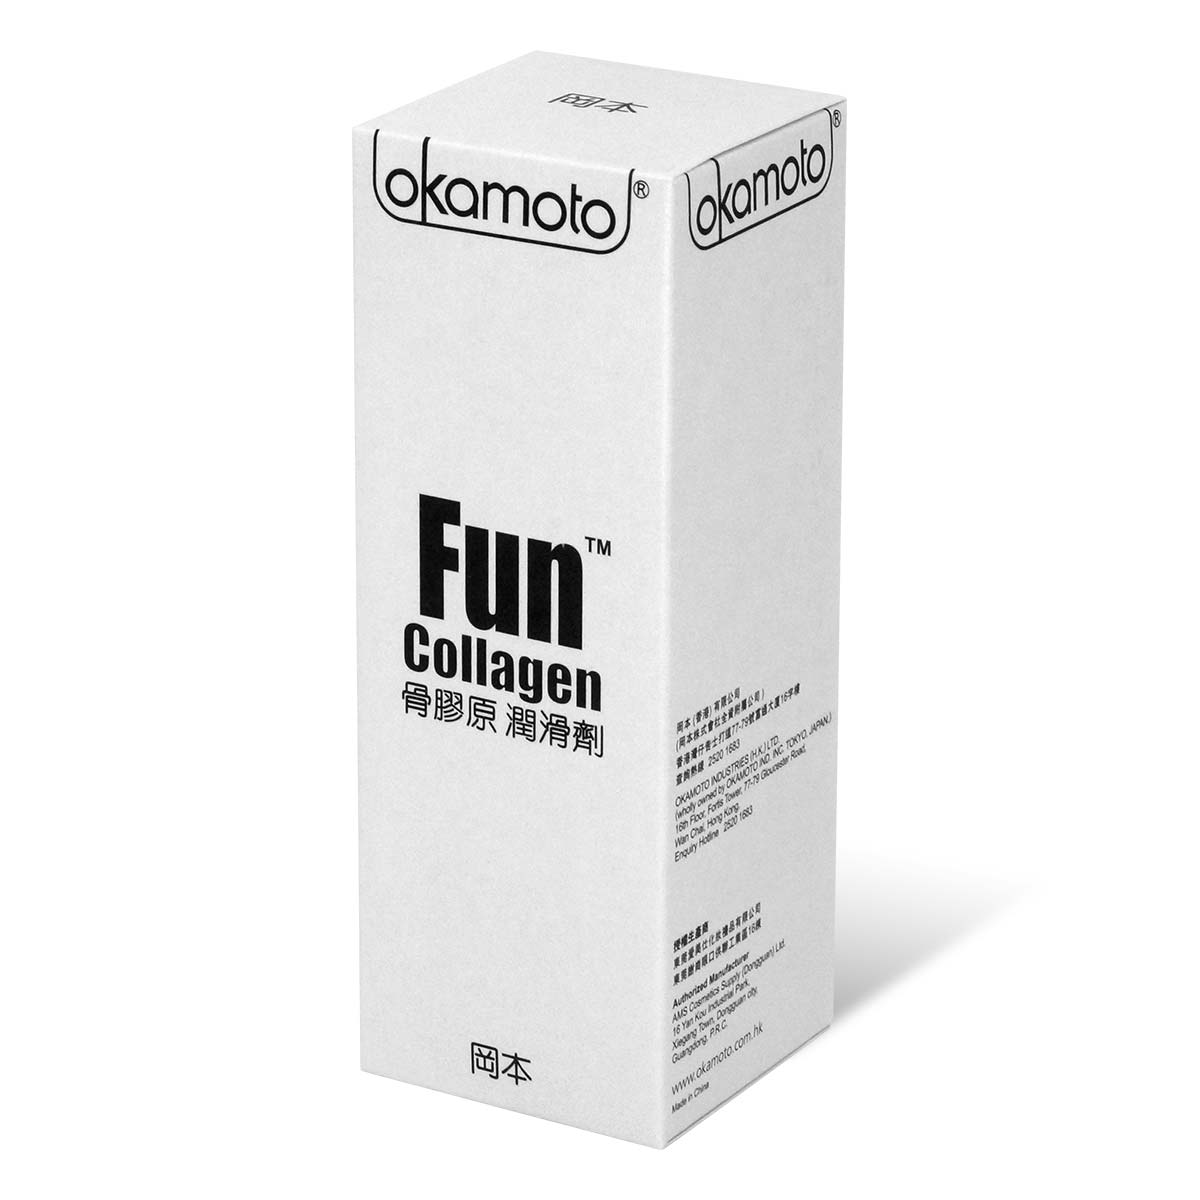 Okamoto FUN Collagen 60ml Water-based Lubricant